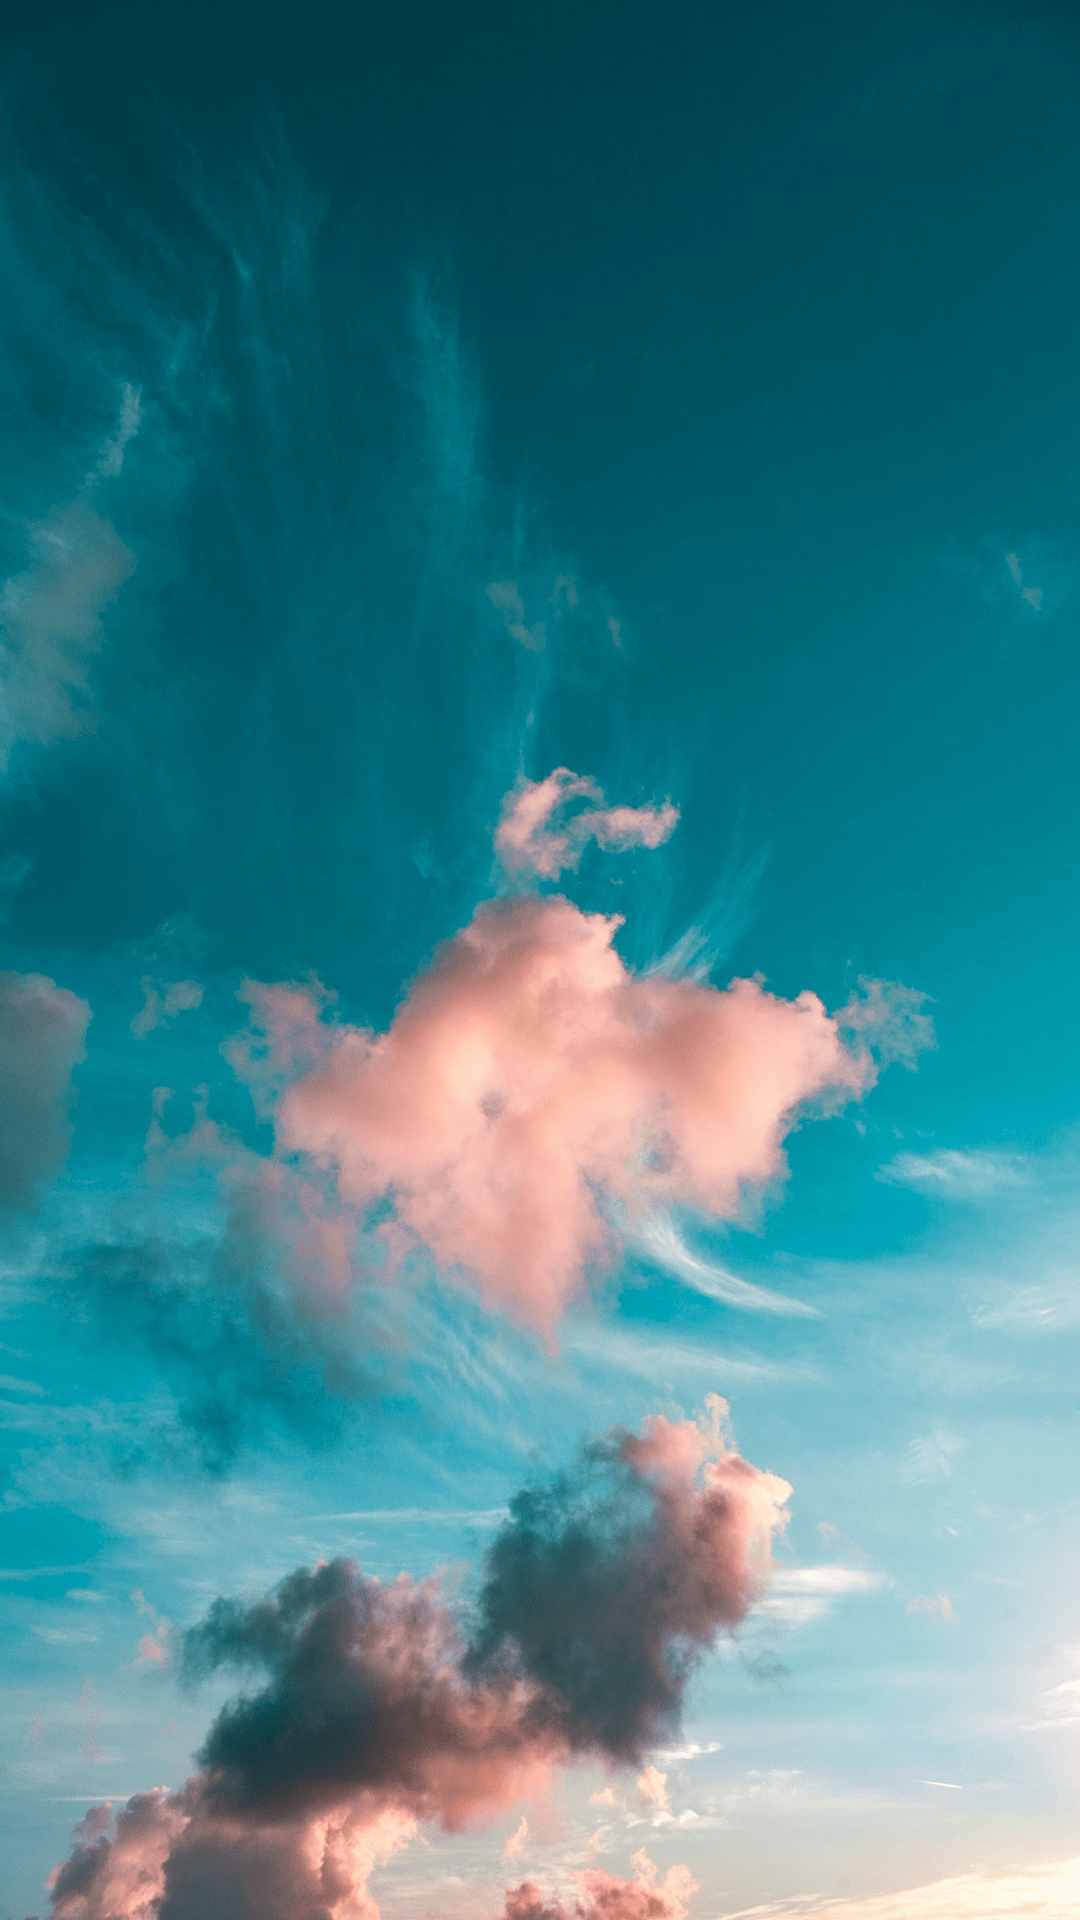 colorful sky wallpapers for iPhone - free HD download